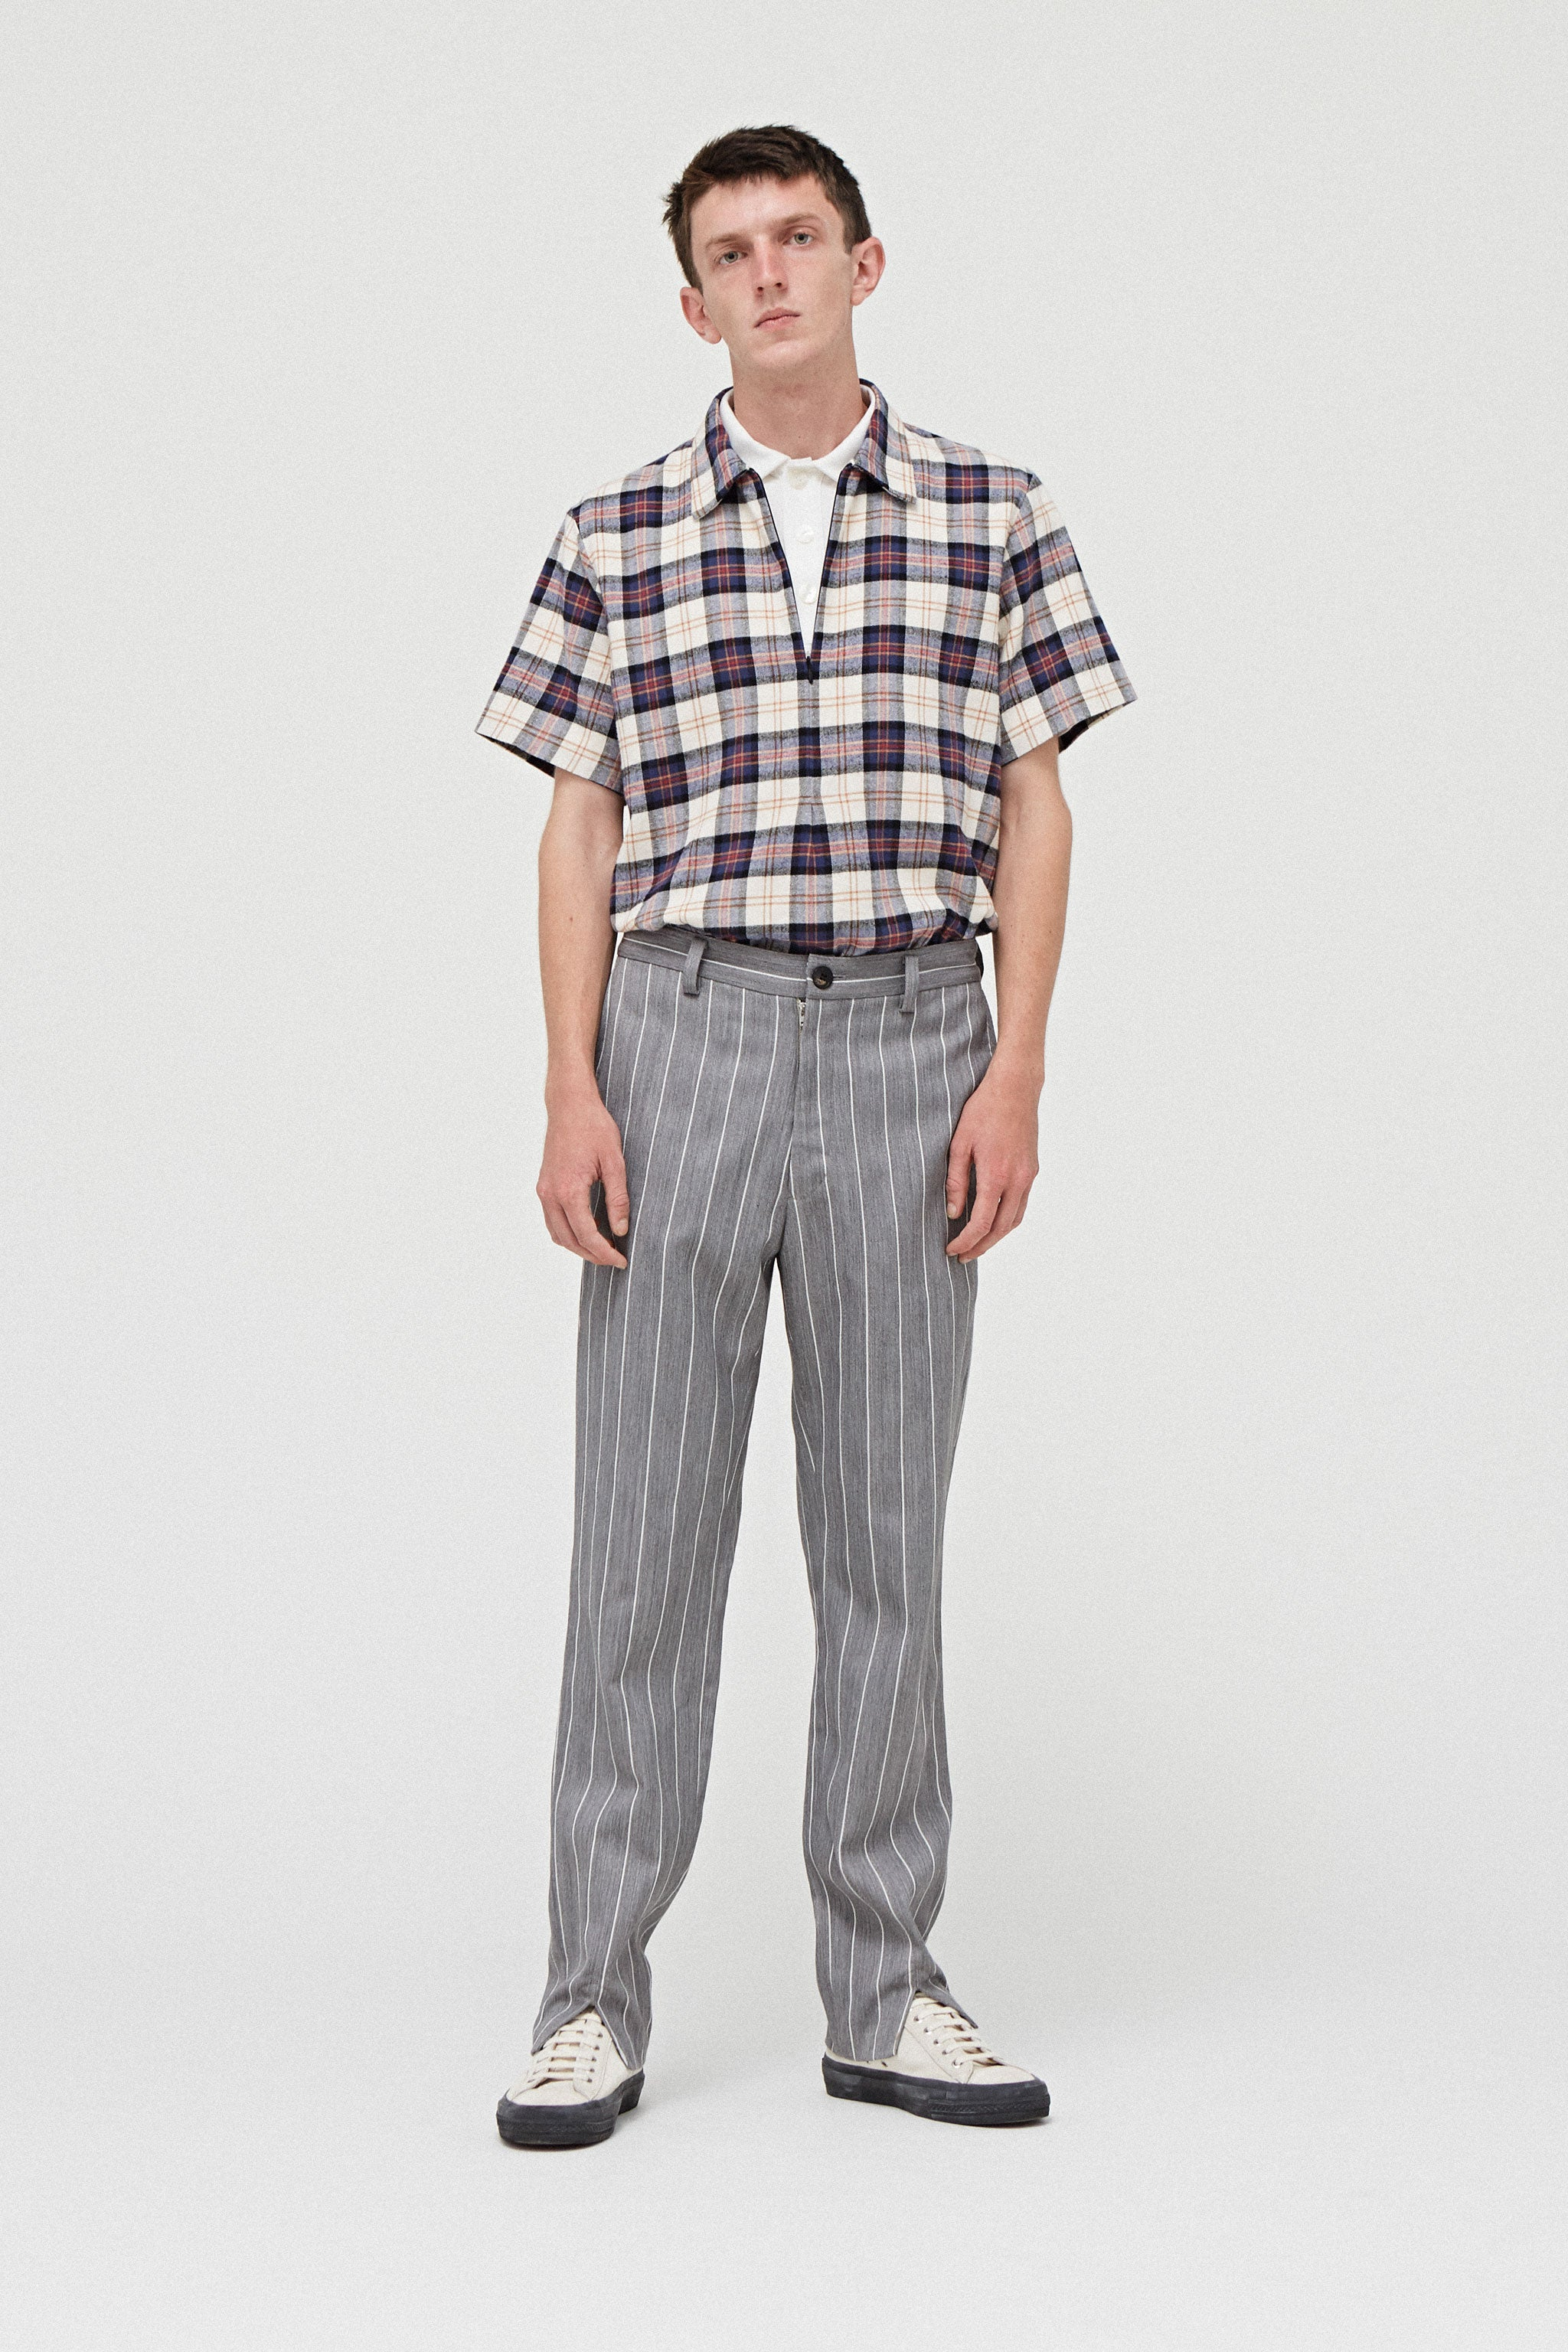 Goodfight FW18 Sunday's Best Trouser Grey Pinstripe